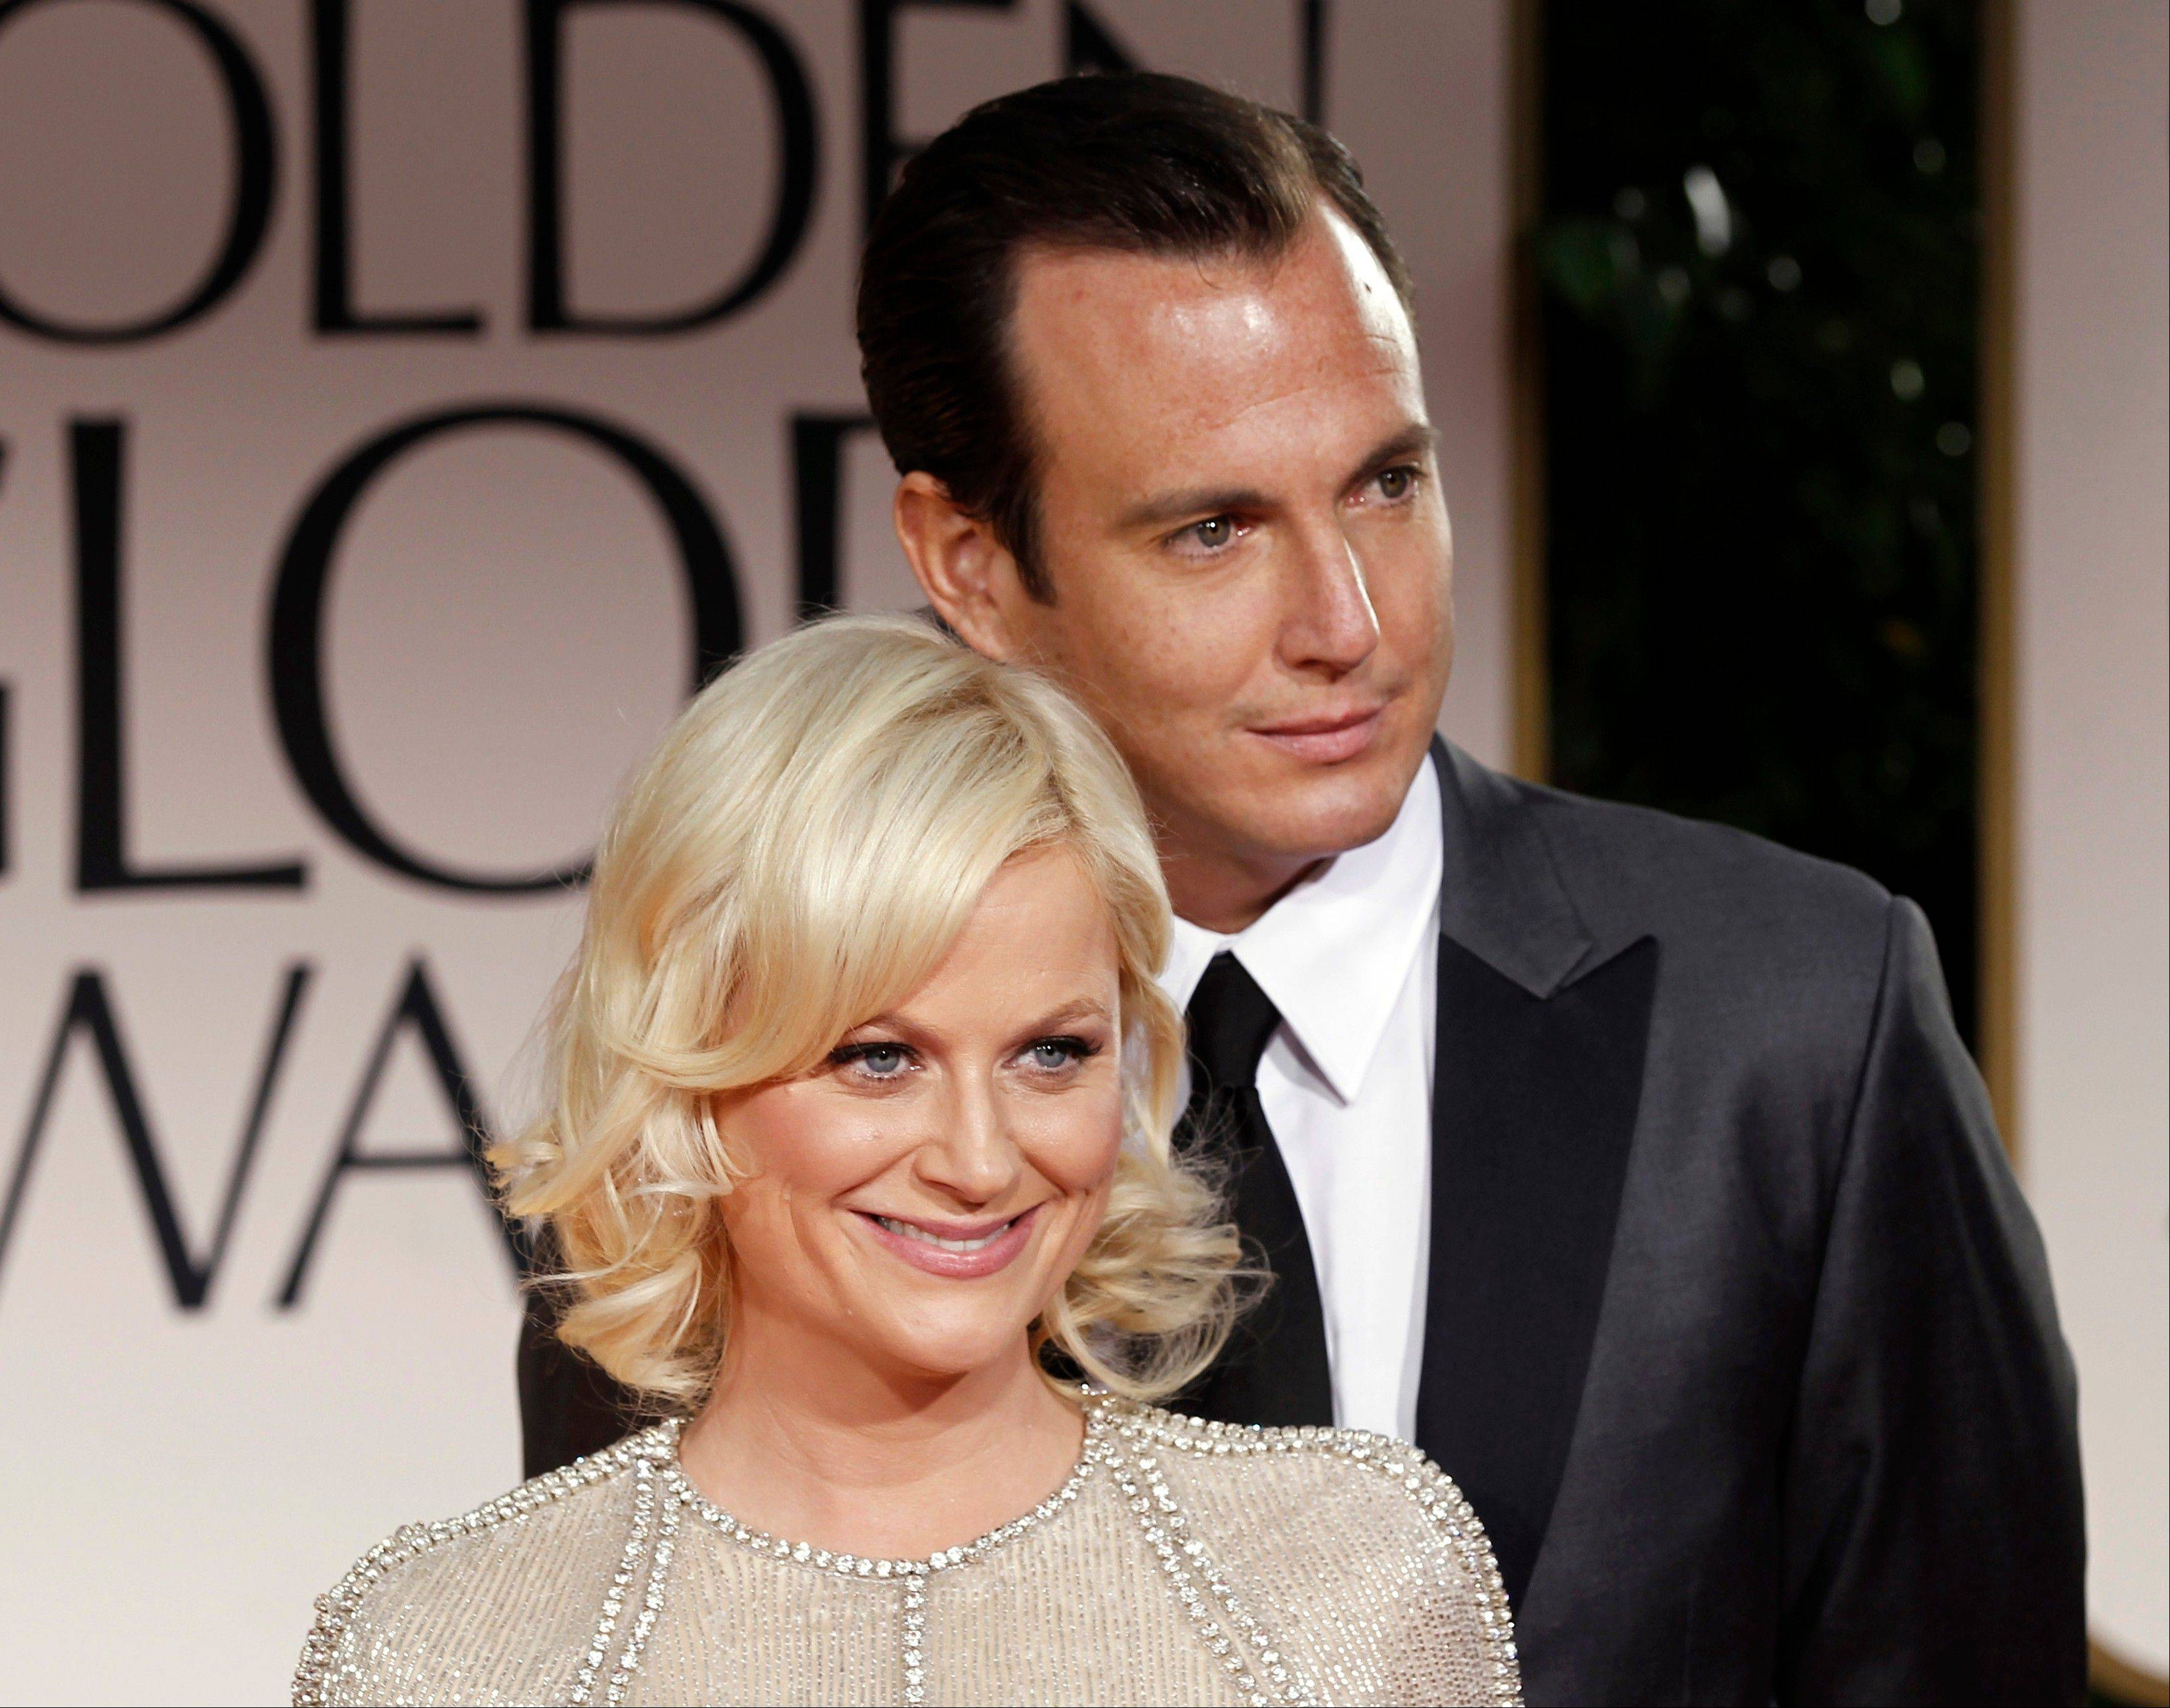 Amy Poehler and Will Arnett are separating after 9 years of marriage, their publicist Lewis Kay confirmed Thursday.